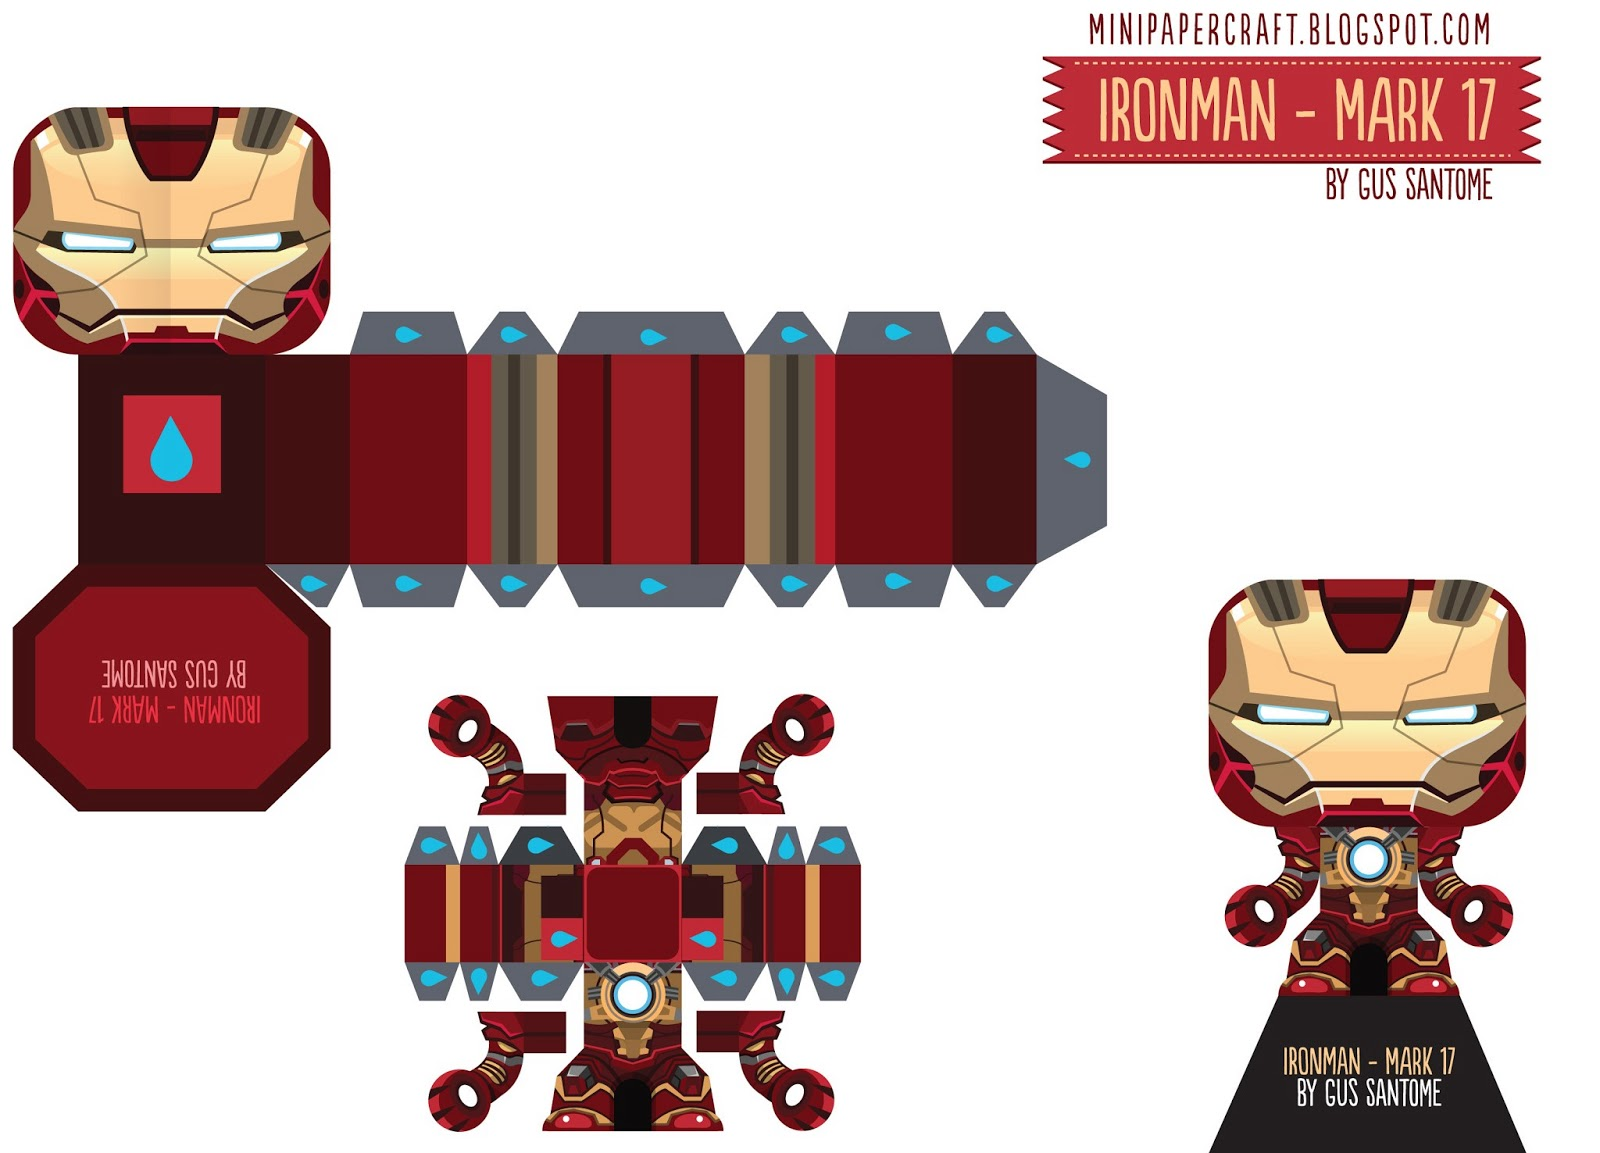 Mini papercraft ironman 3 mark 17 35 38 - Mini iron man ...